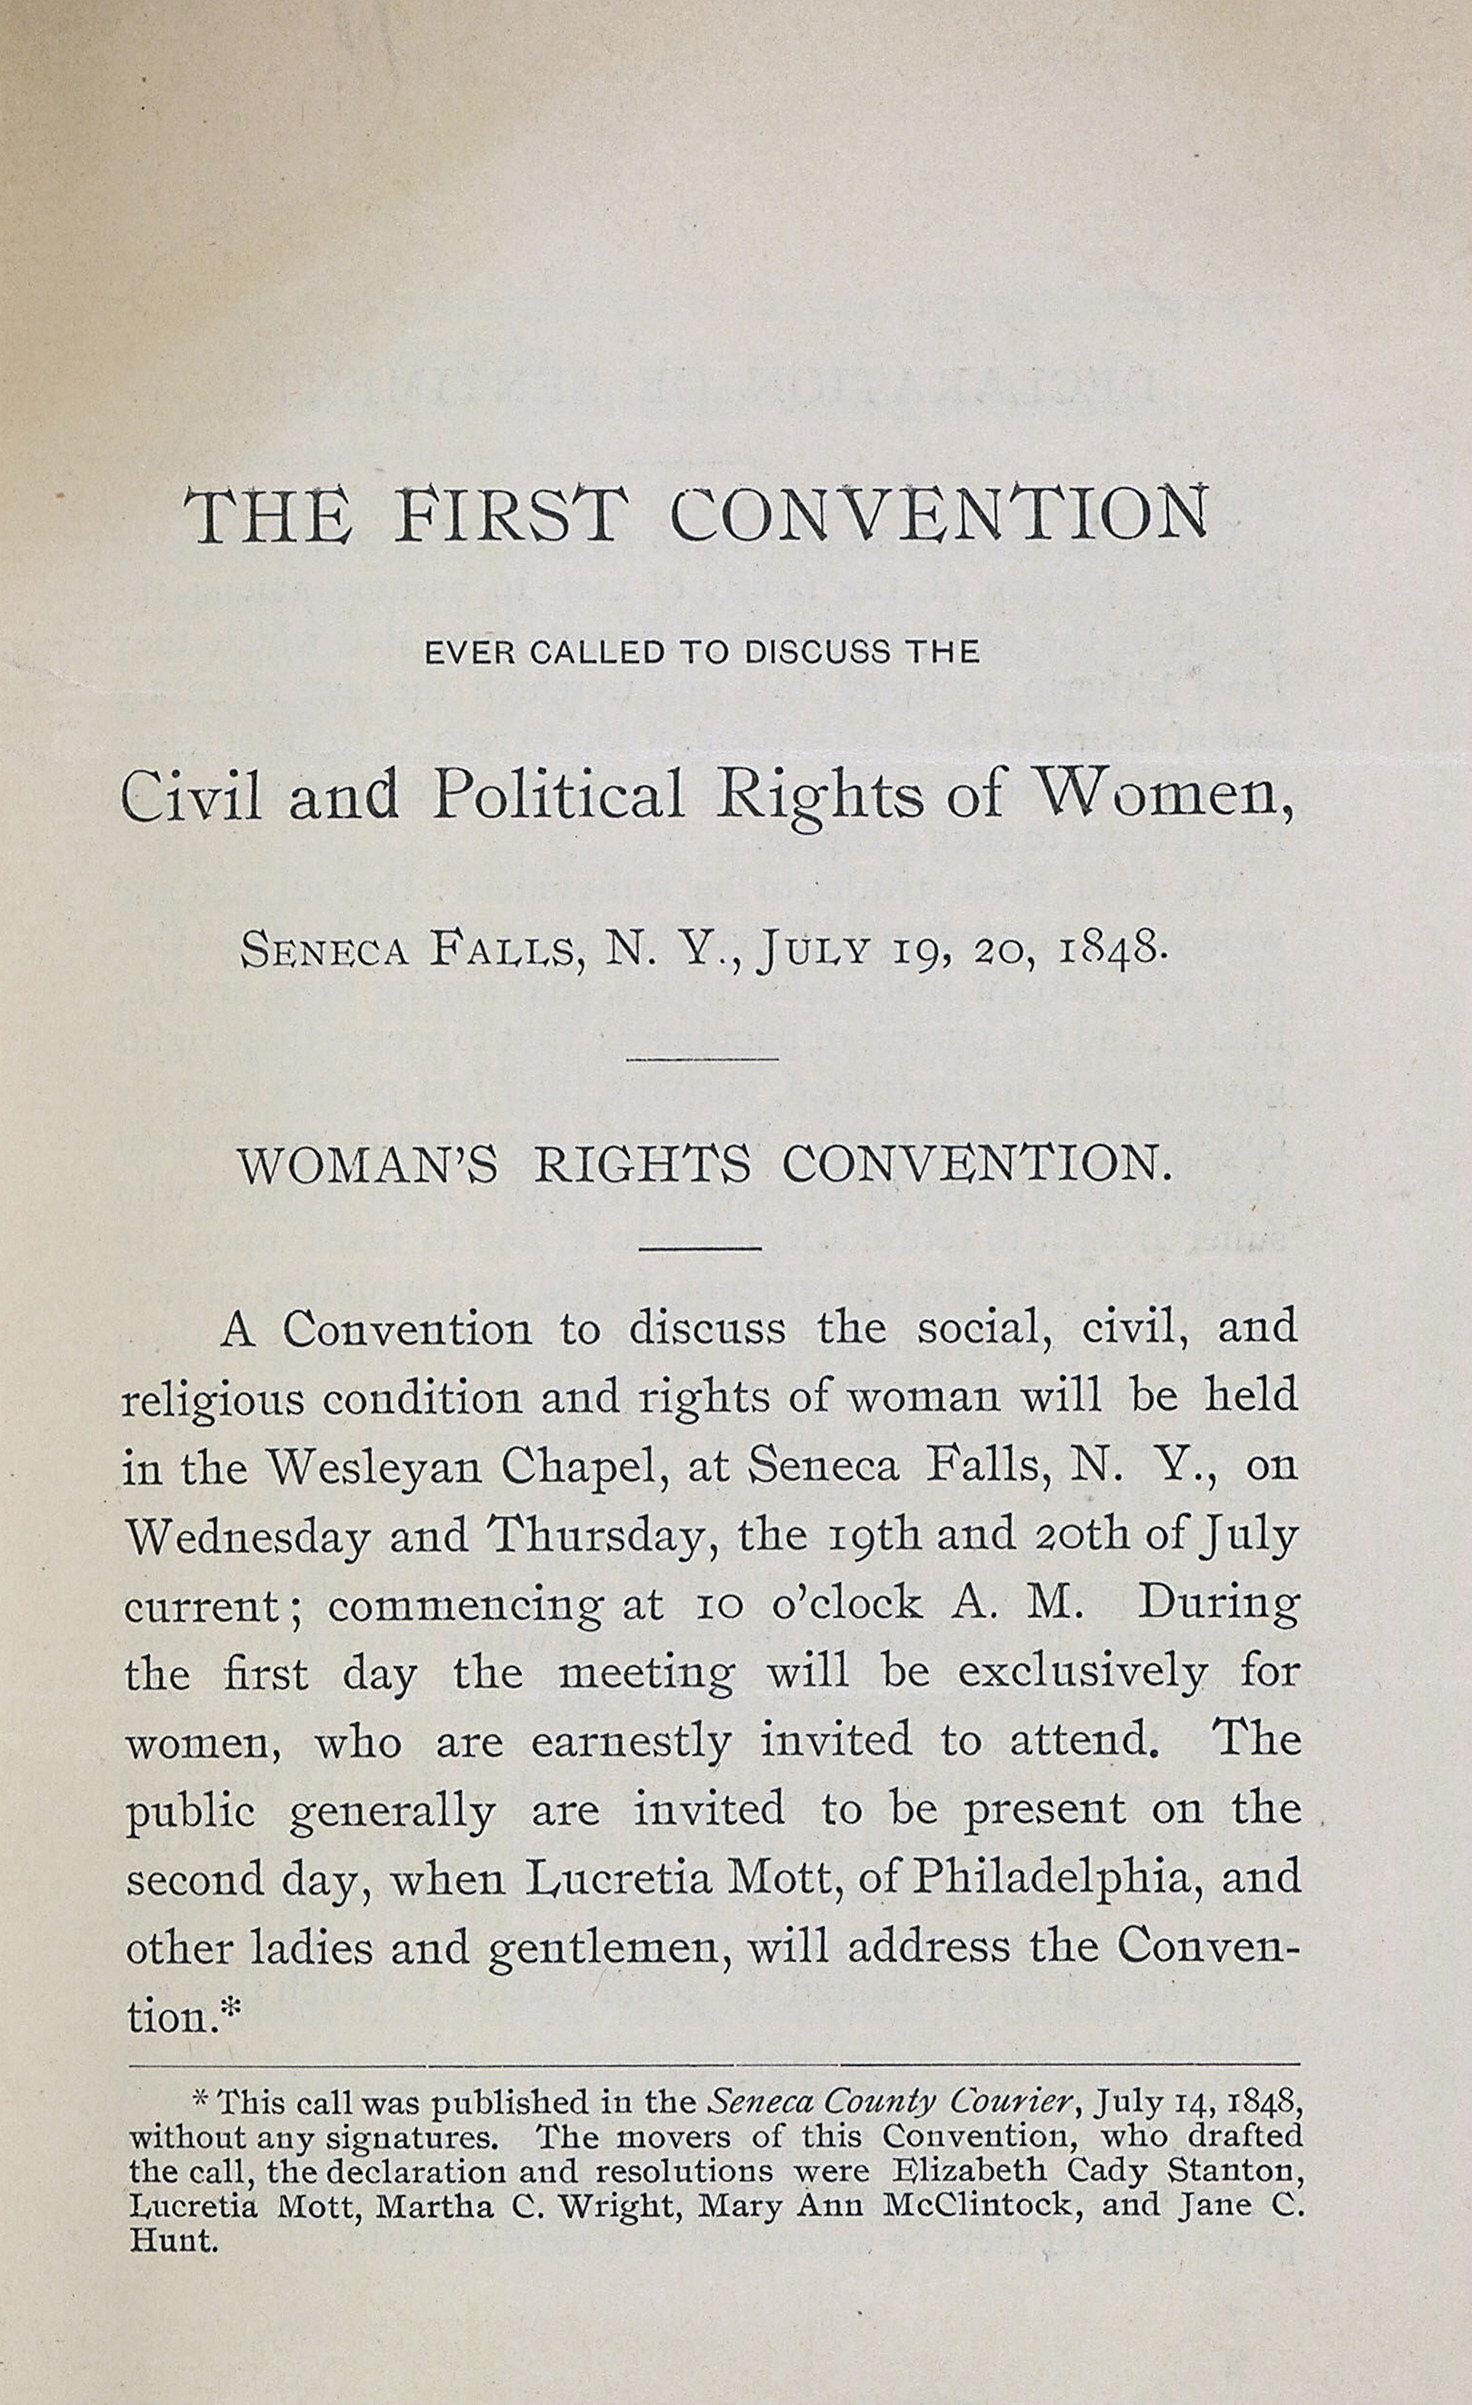 First Convention to Discuss the Civil and Political Rights of Women, was held at Seneca Falls, New York, on July 19, 20, 1848. This is first printing of the 1848 report. The pamphlet reprints 'The Cal', first published July 14, 1848.from Elizabeth Cady Stanton's speeches.